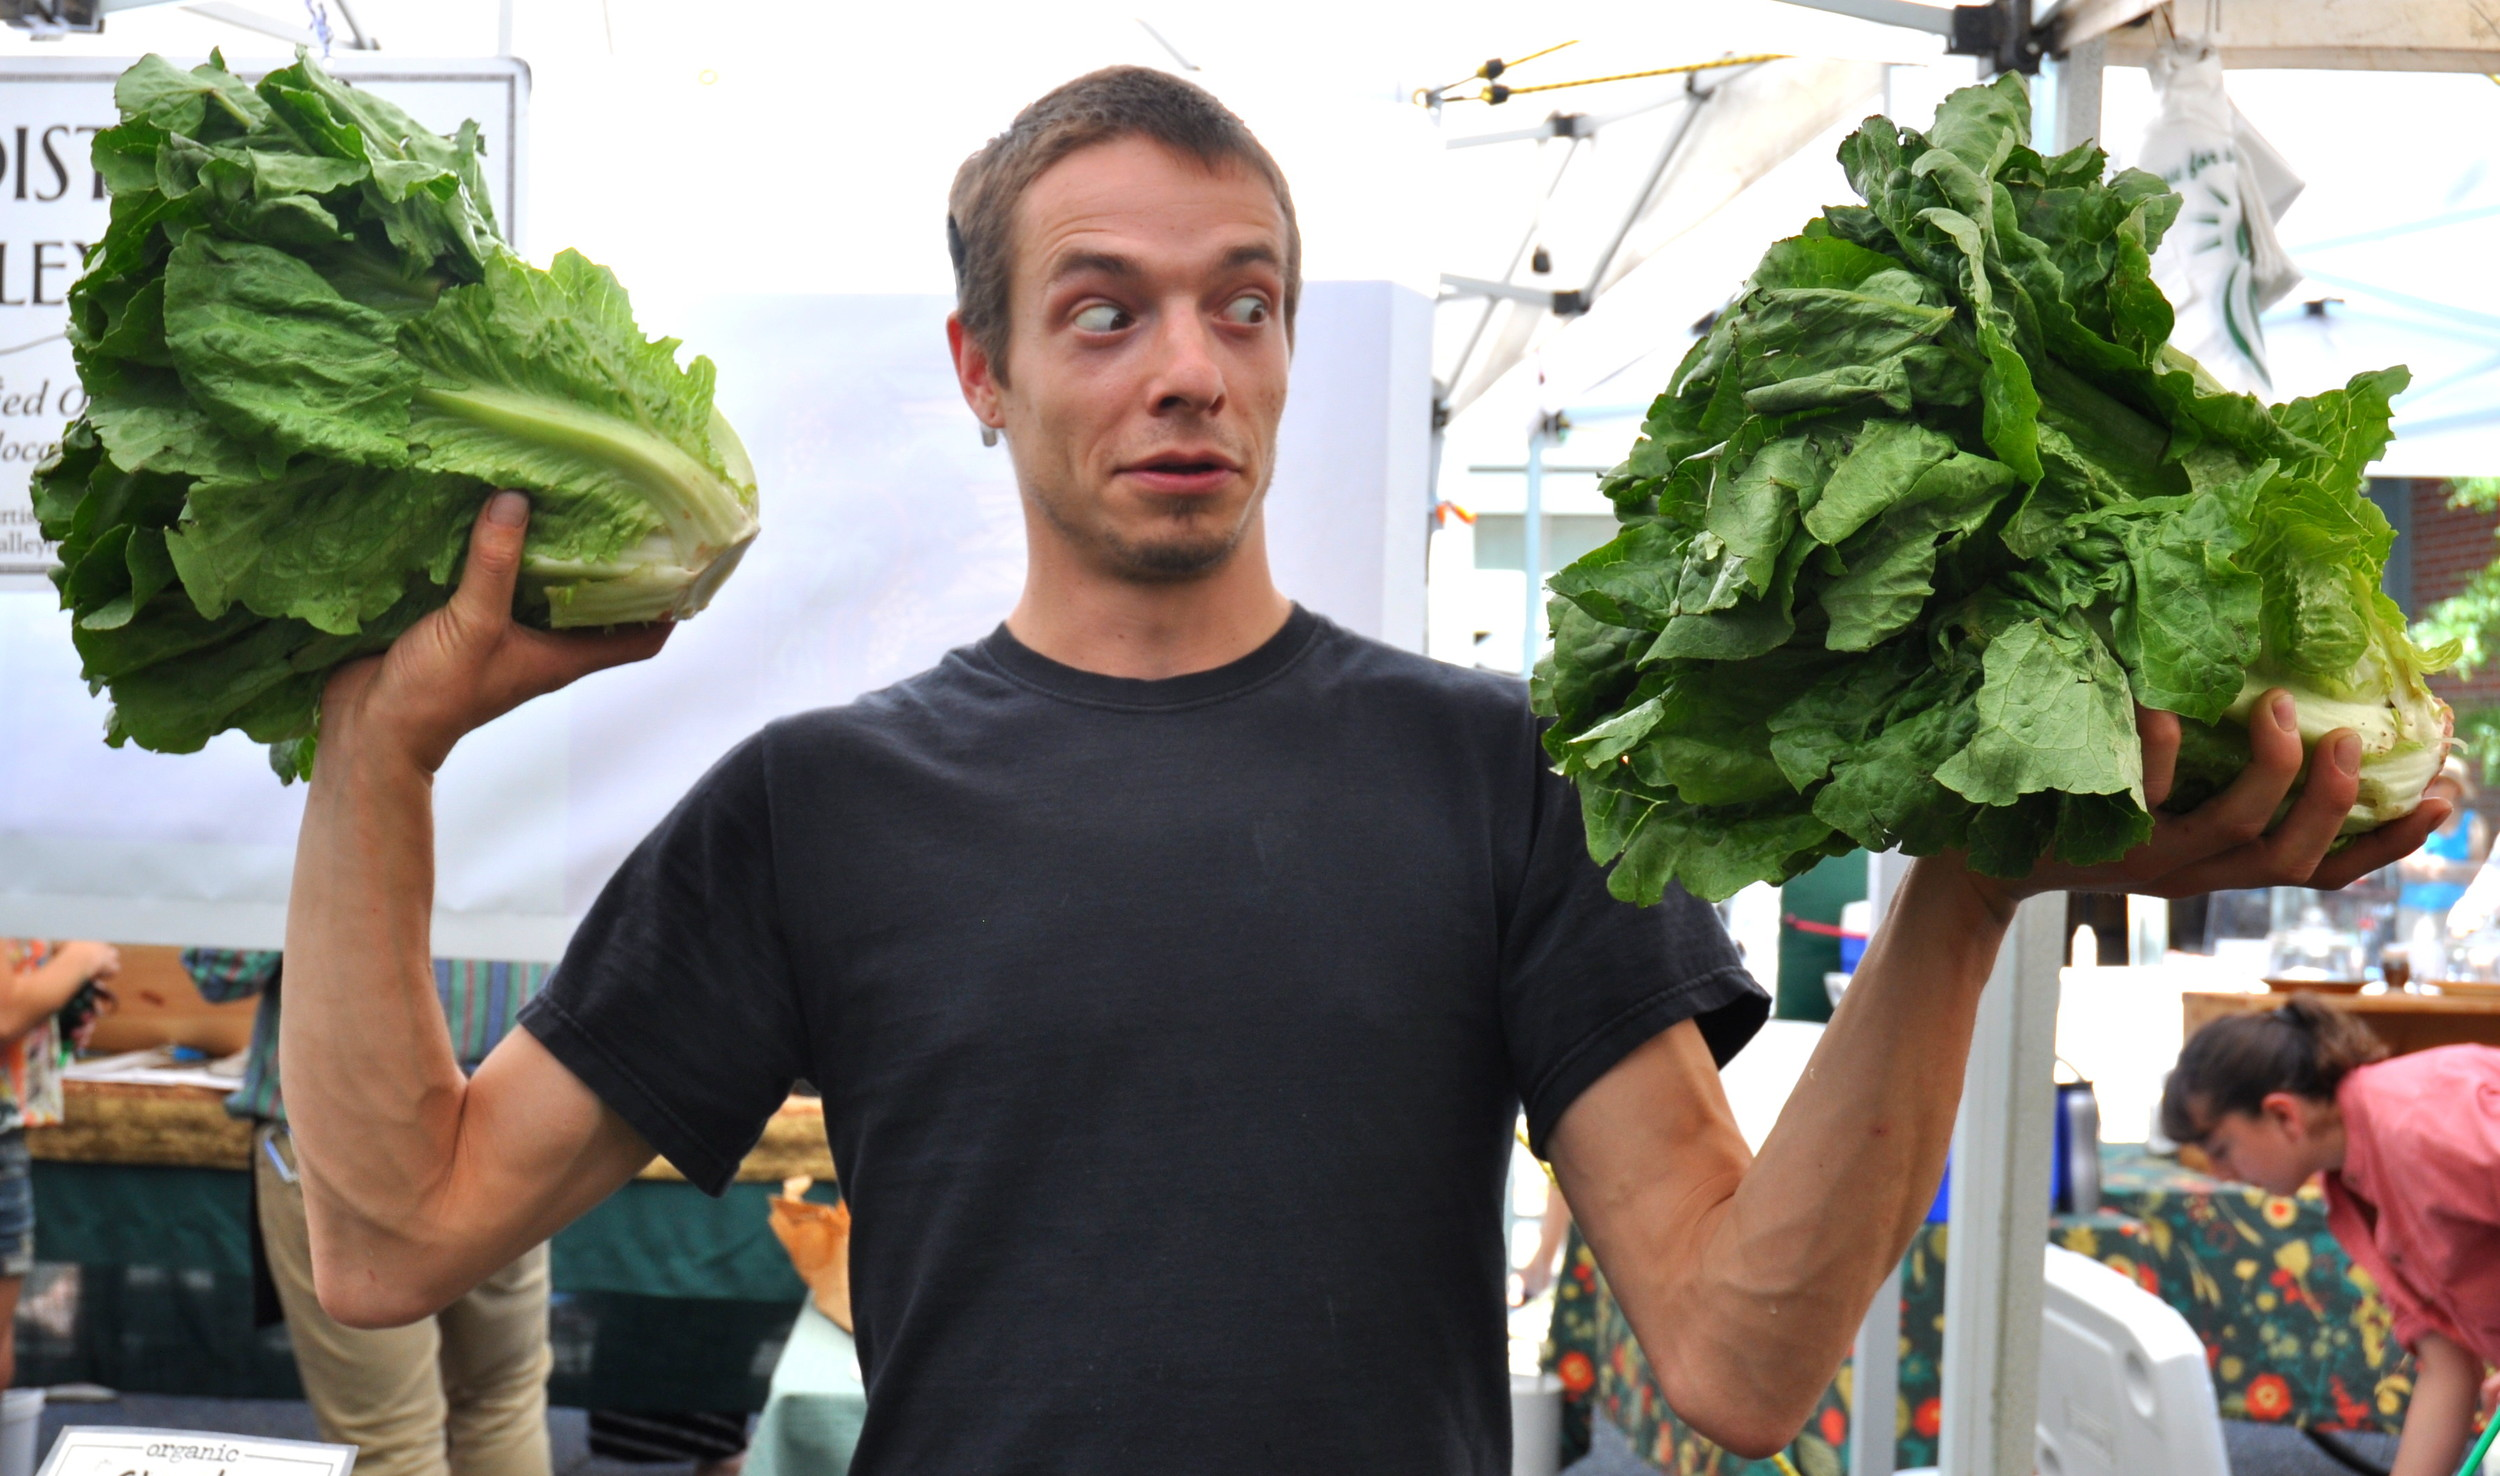 Eric displays huge heads of romaine lettuce from Boistfort Valley Farm at Ballard Farmers Market. Copyright Zachary D. Lyons.